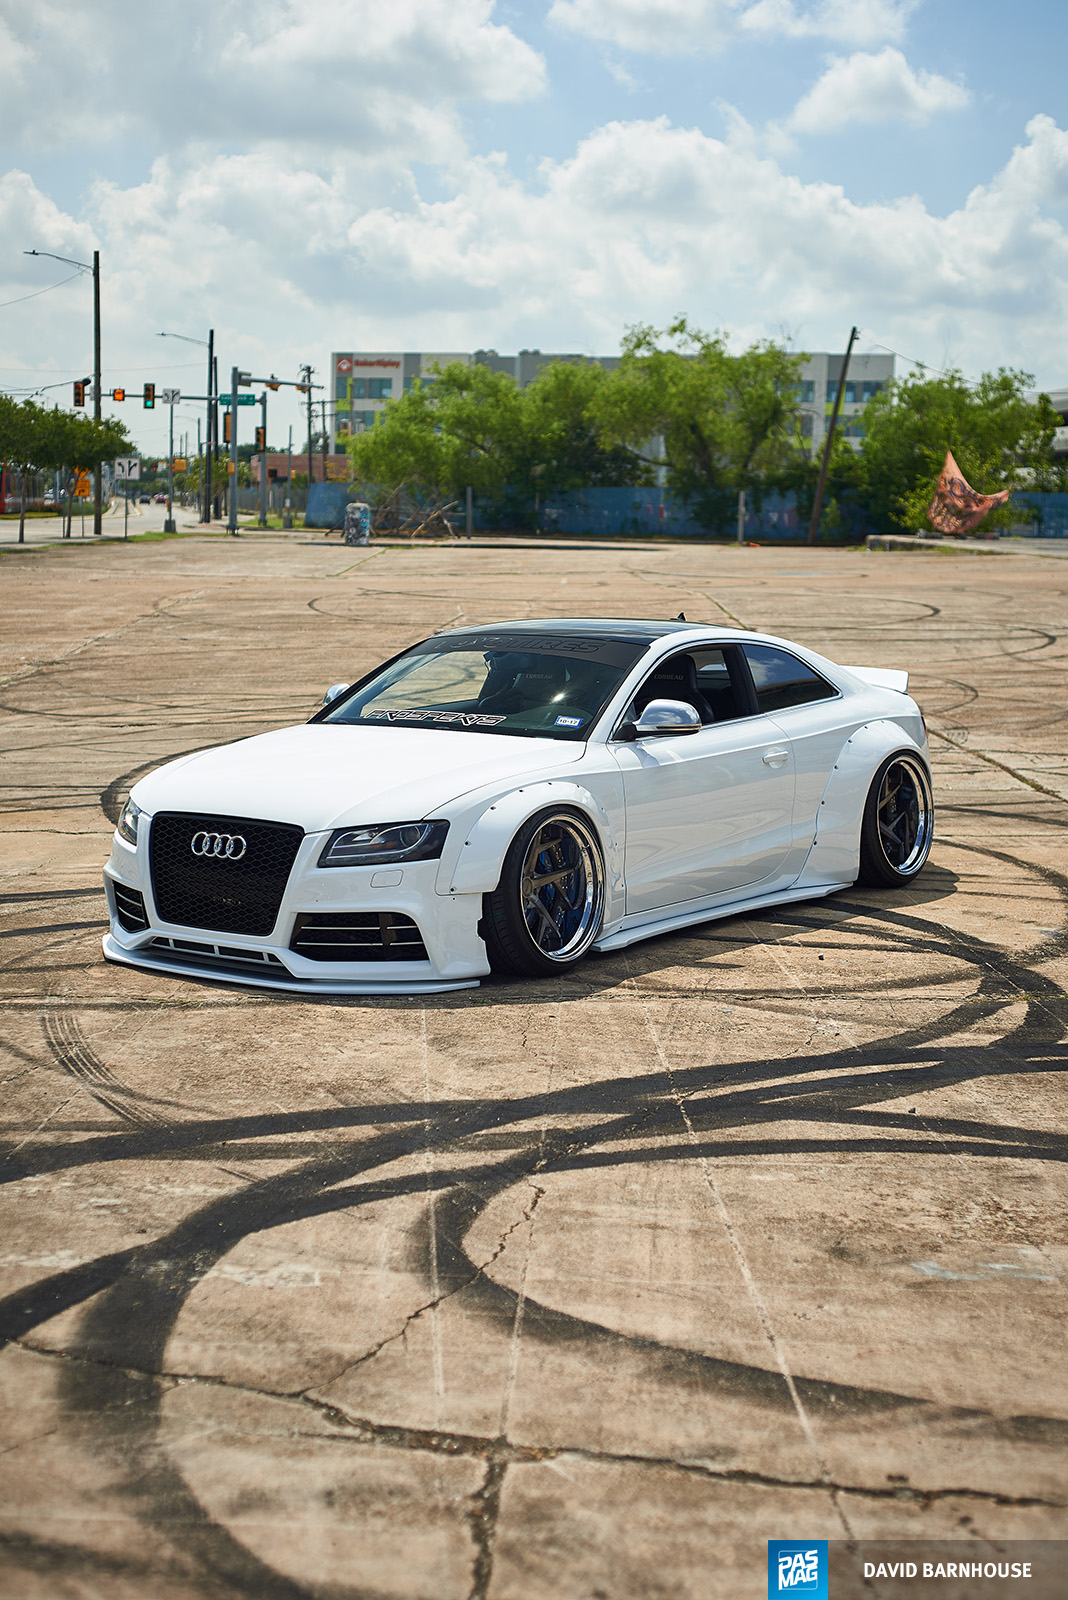 06 Thomas Ho 2009 Audi S5 pasmag builds to follow